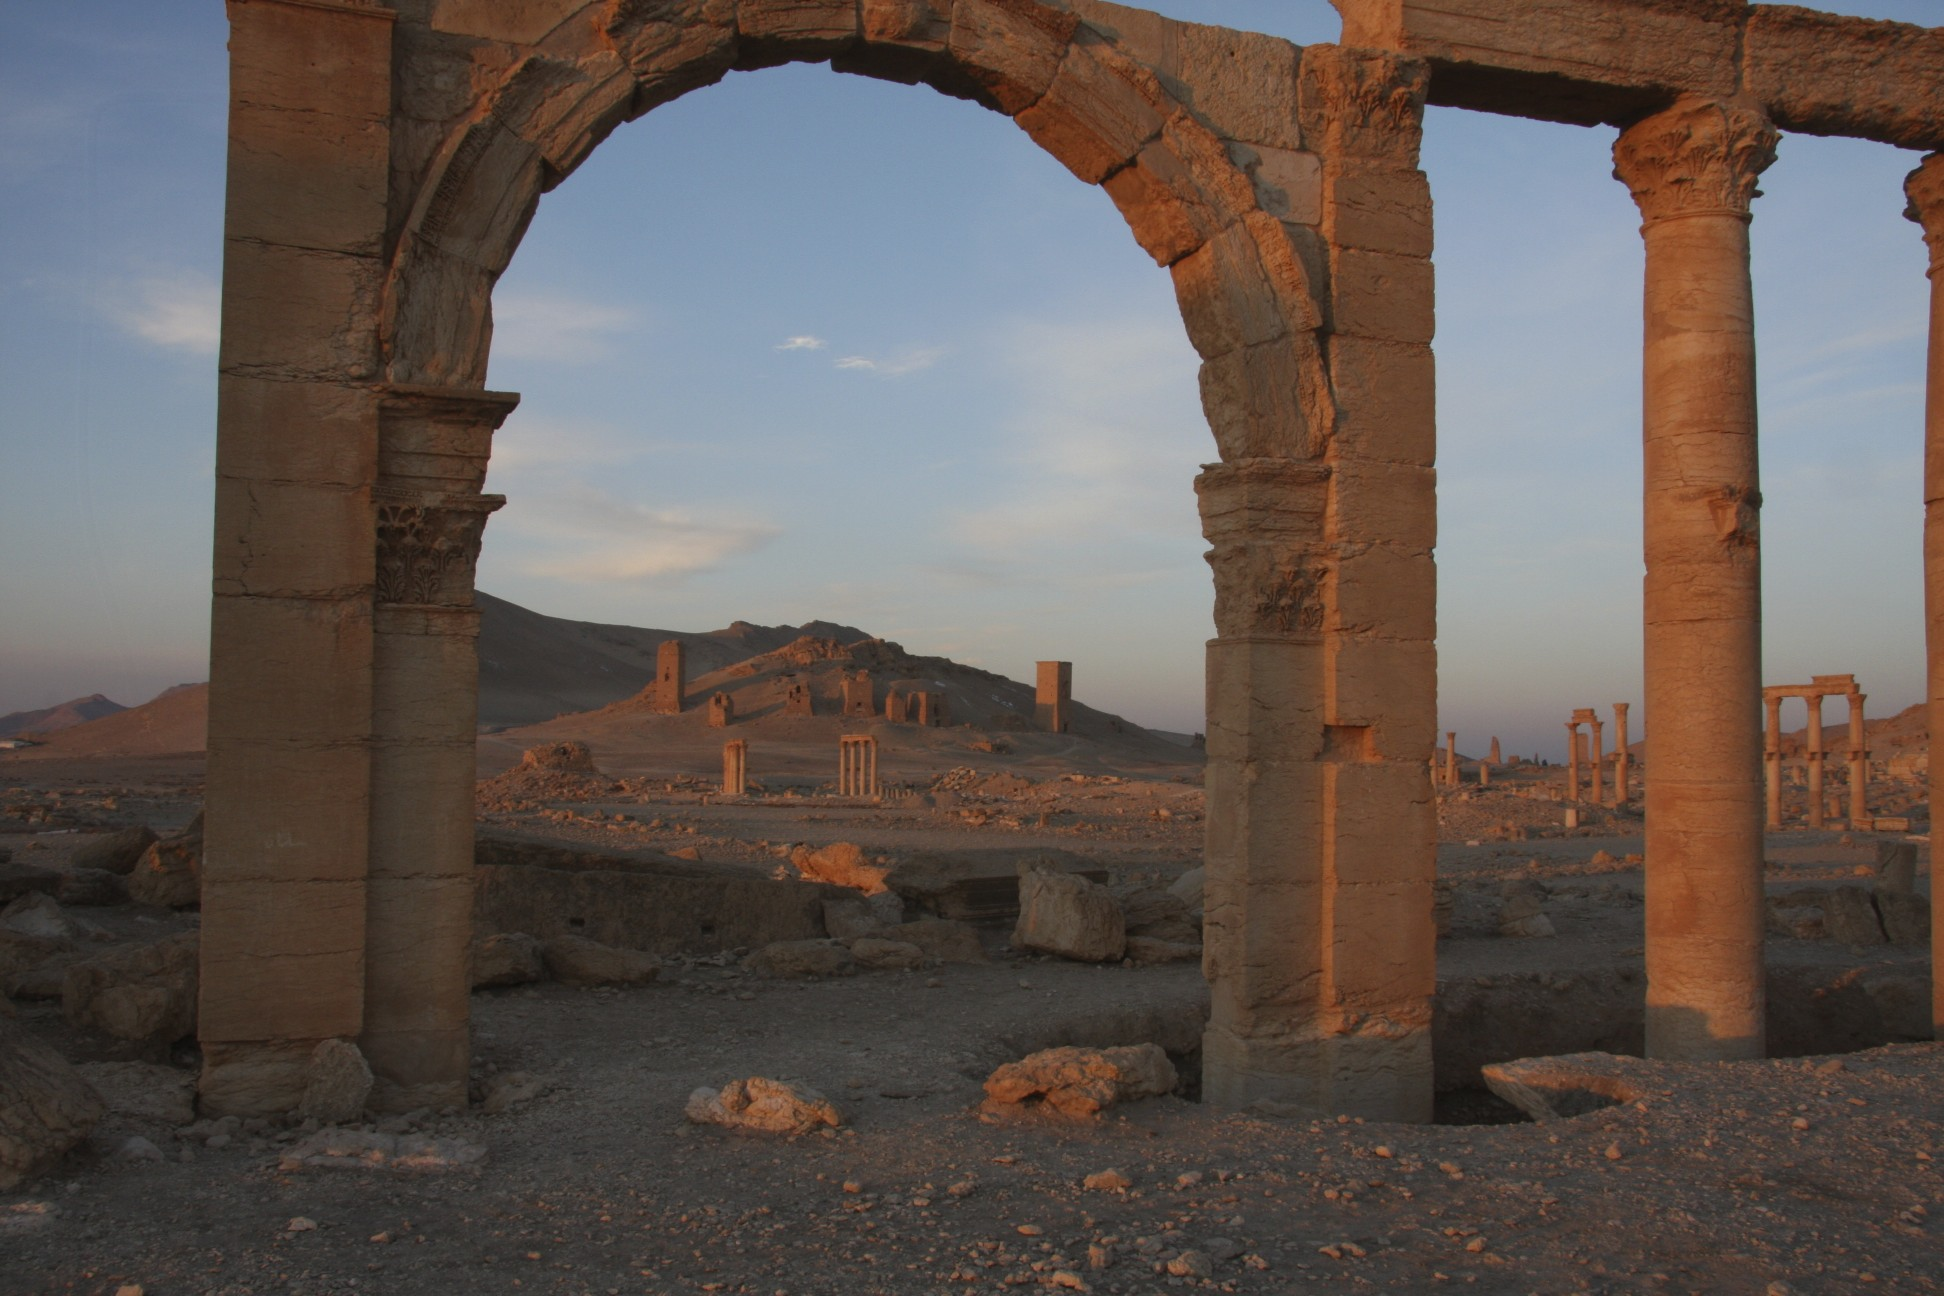 Palmyra - the ancient Silk Road city